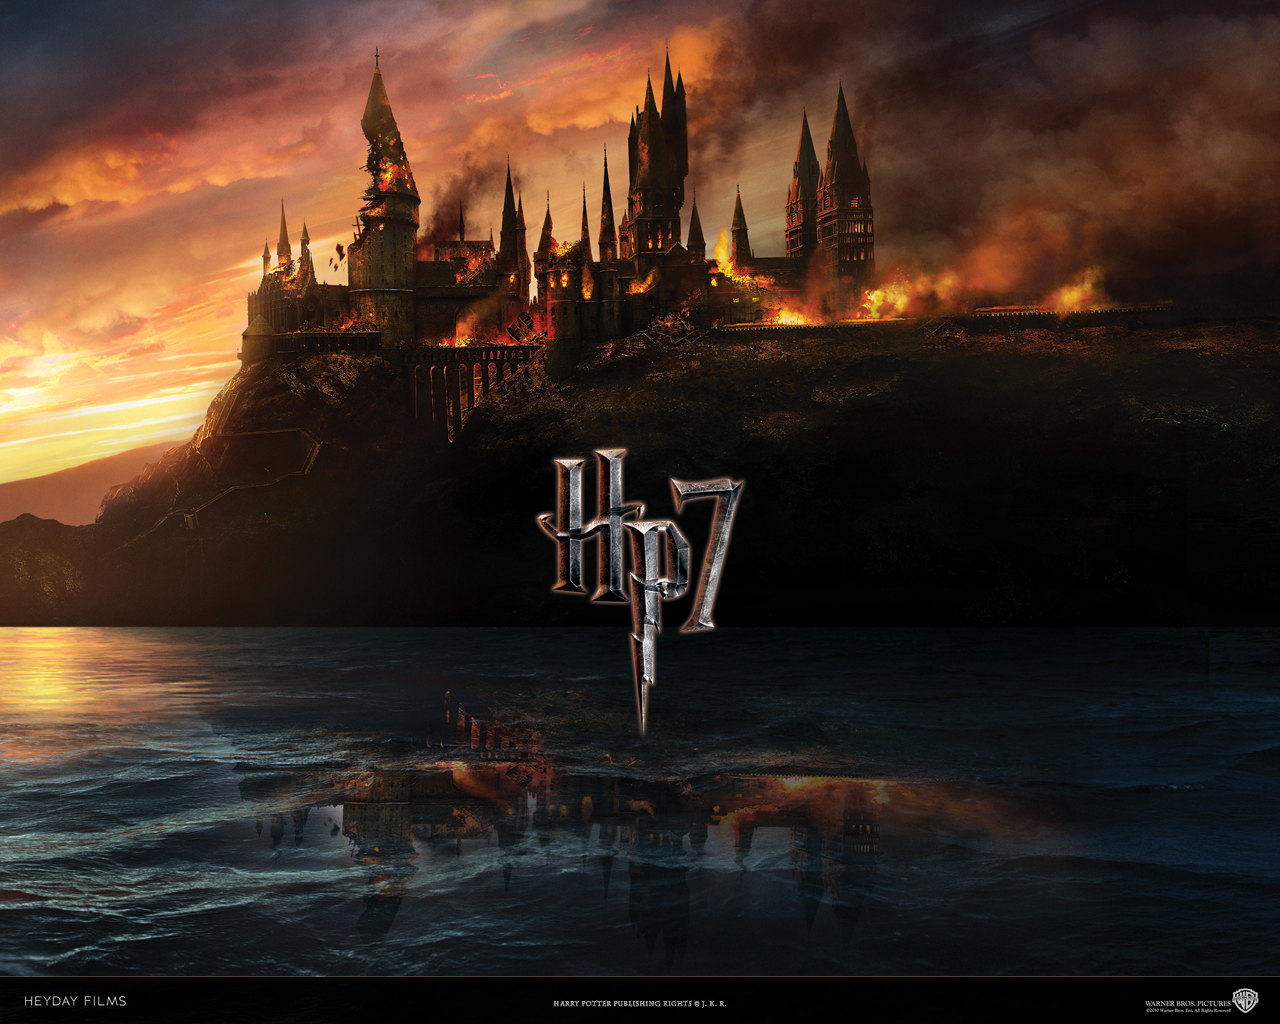 harry potter and the deathly hallows movies images